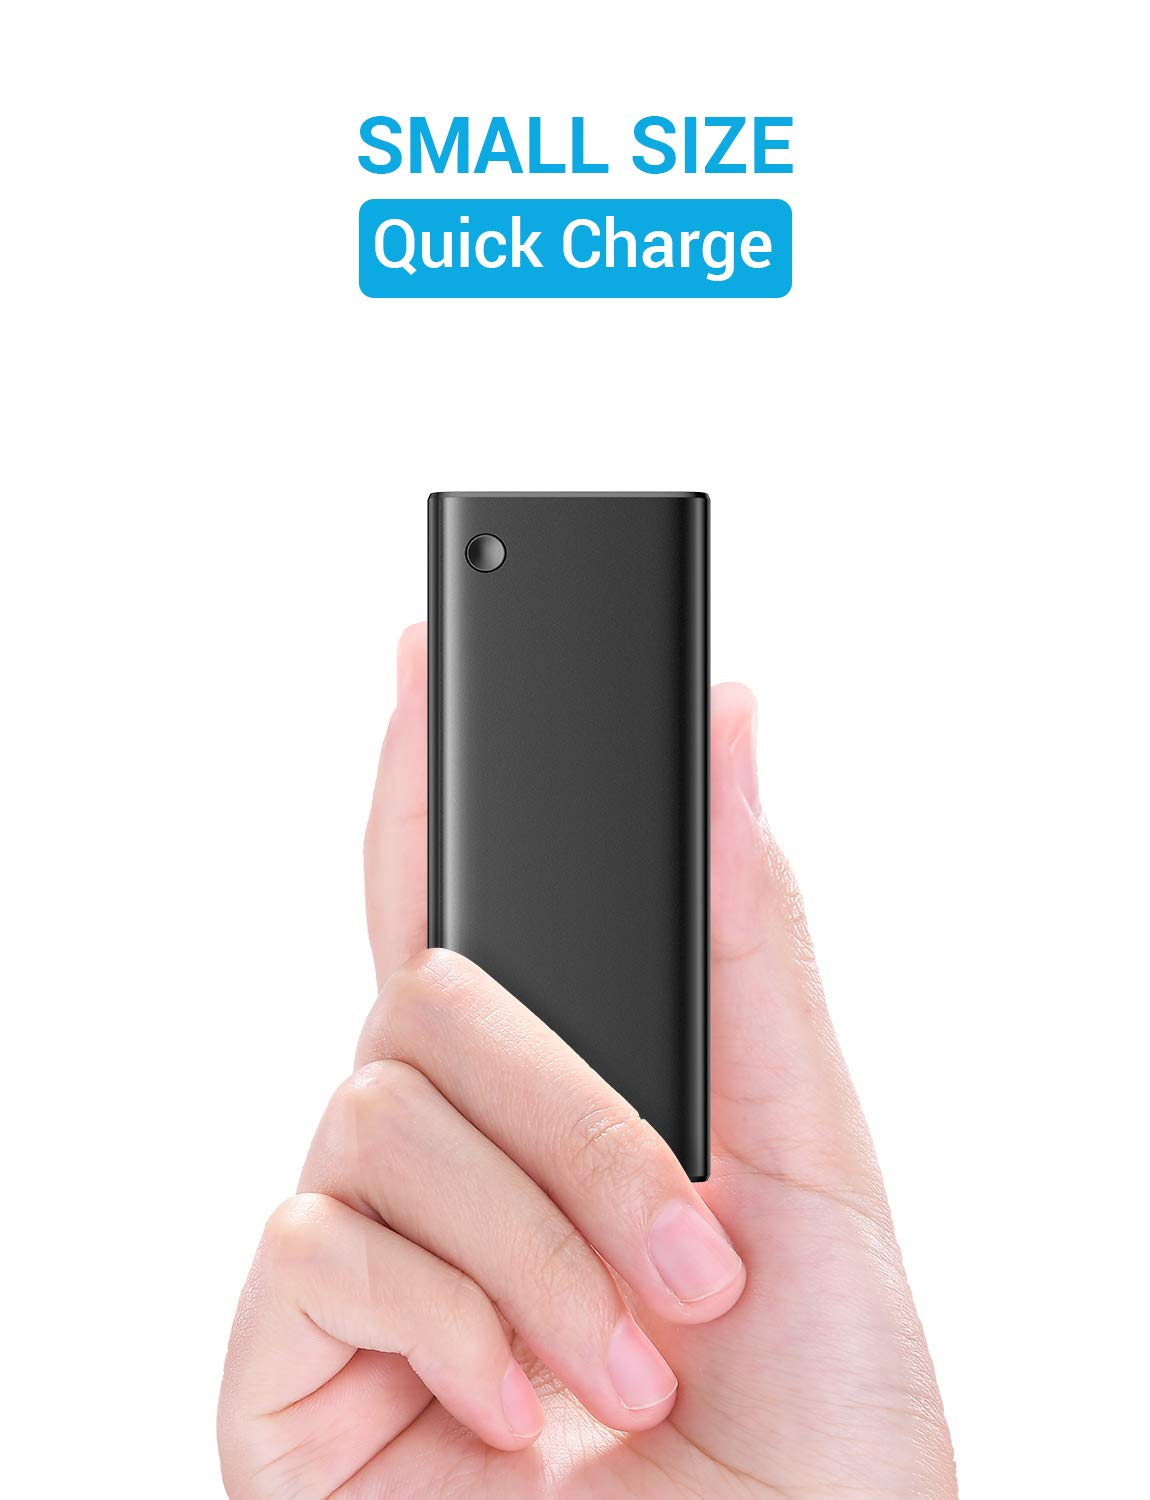 Samsung Galaxy S10//s9//s8 and More AINOPE Portable Charger 10000mah Mini, USB-C 3A Output /& Input Travel Power Bank for iPhone Xr//Xs iPad Fast Dual USB Outputs Battery Pack with C to C Fast Cable